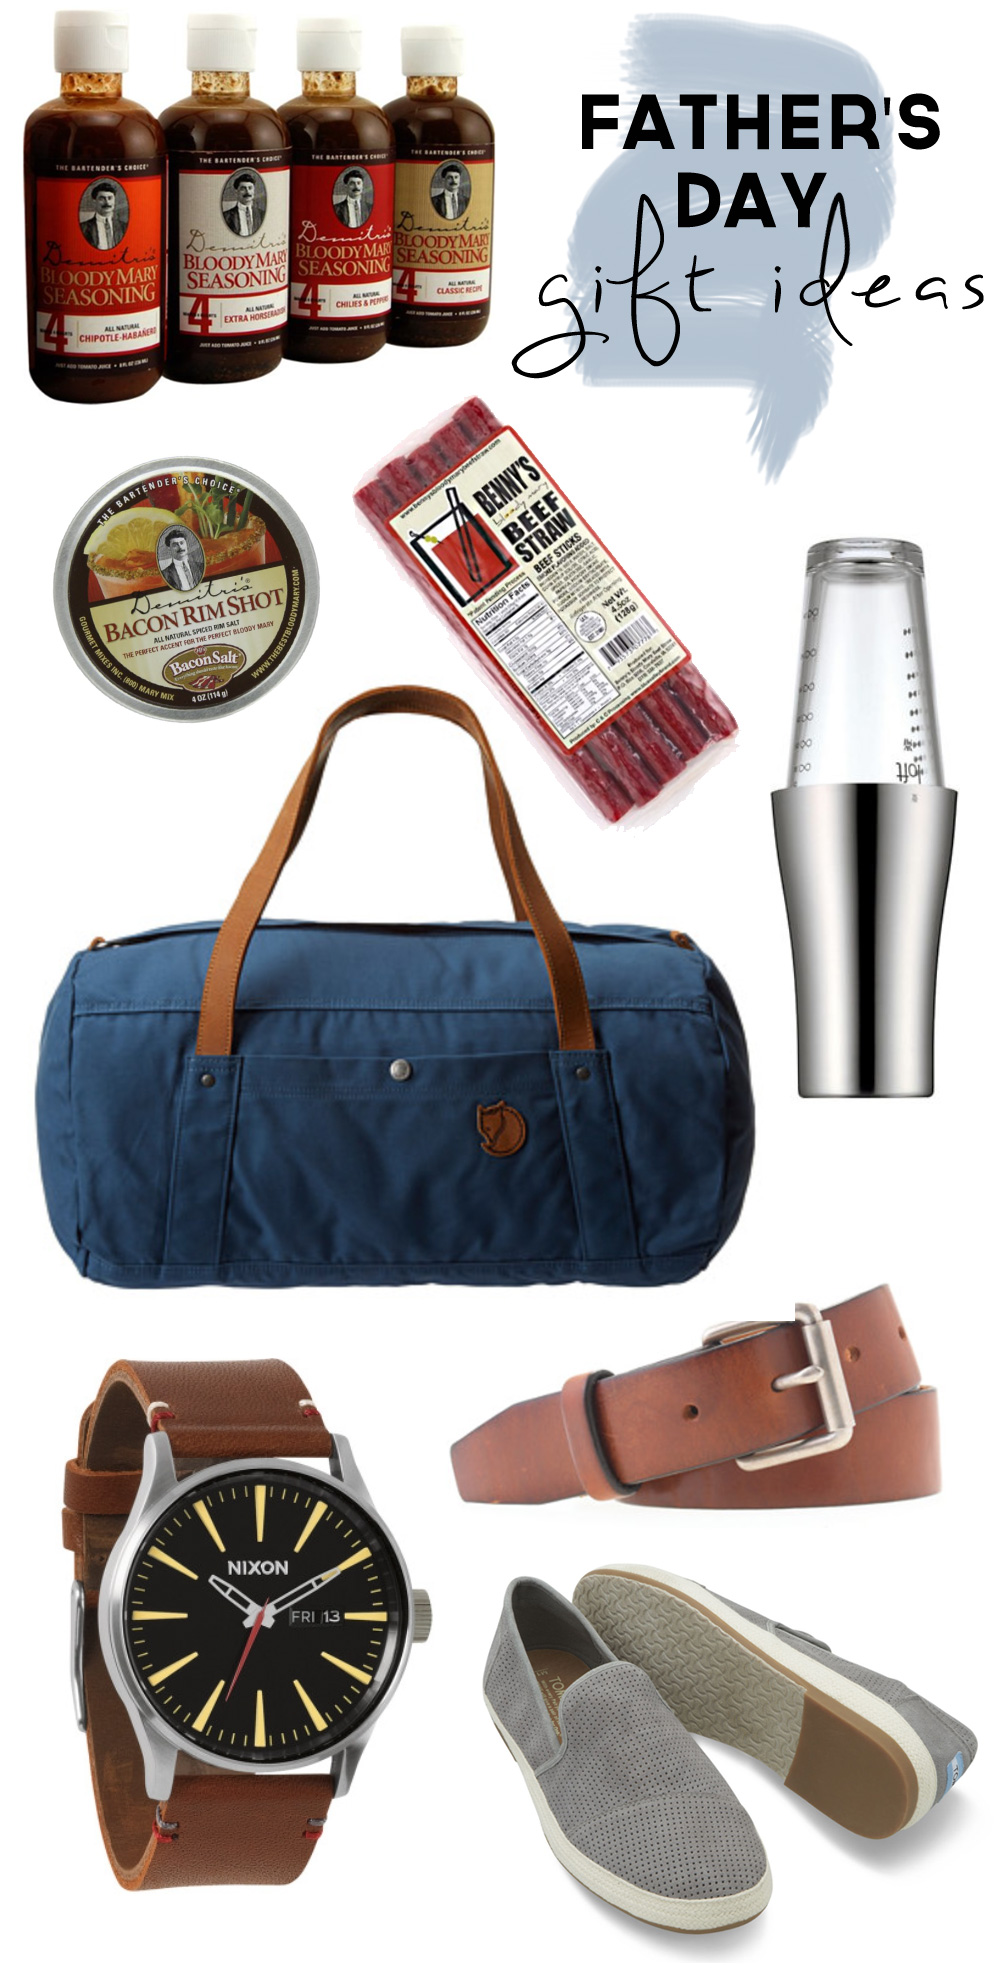 Father's Day 2014 Gift Guide Ideas | PepperDesignBlog.com